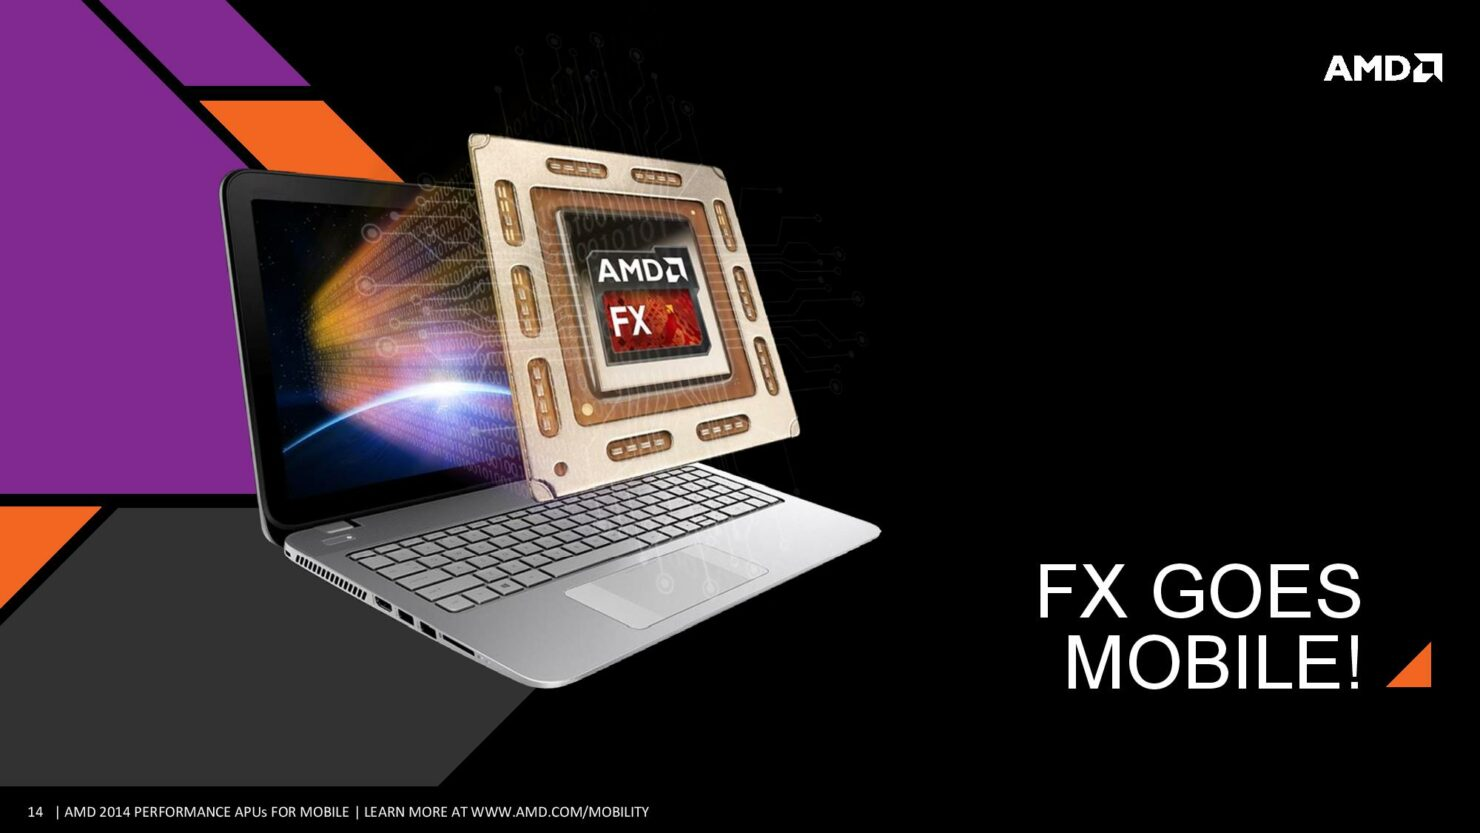 amd2014performancemobileapus-140528183404-phpapp02-page-014